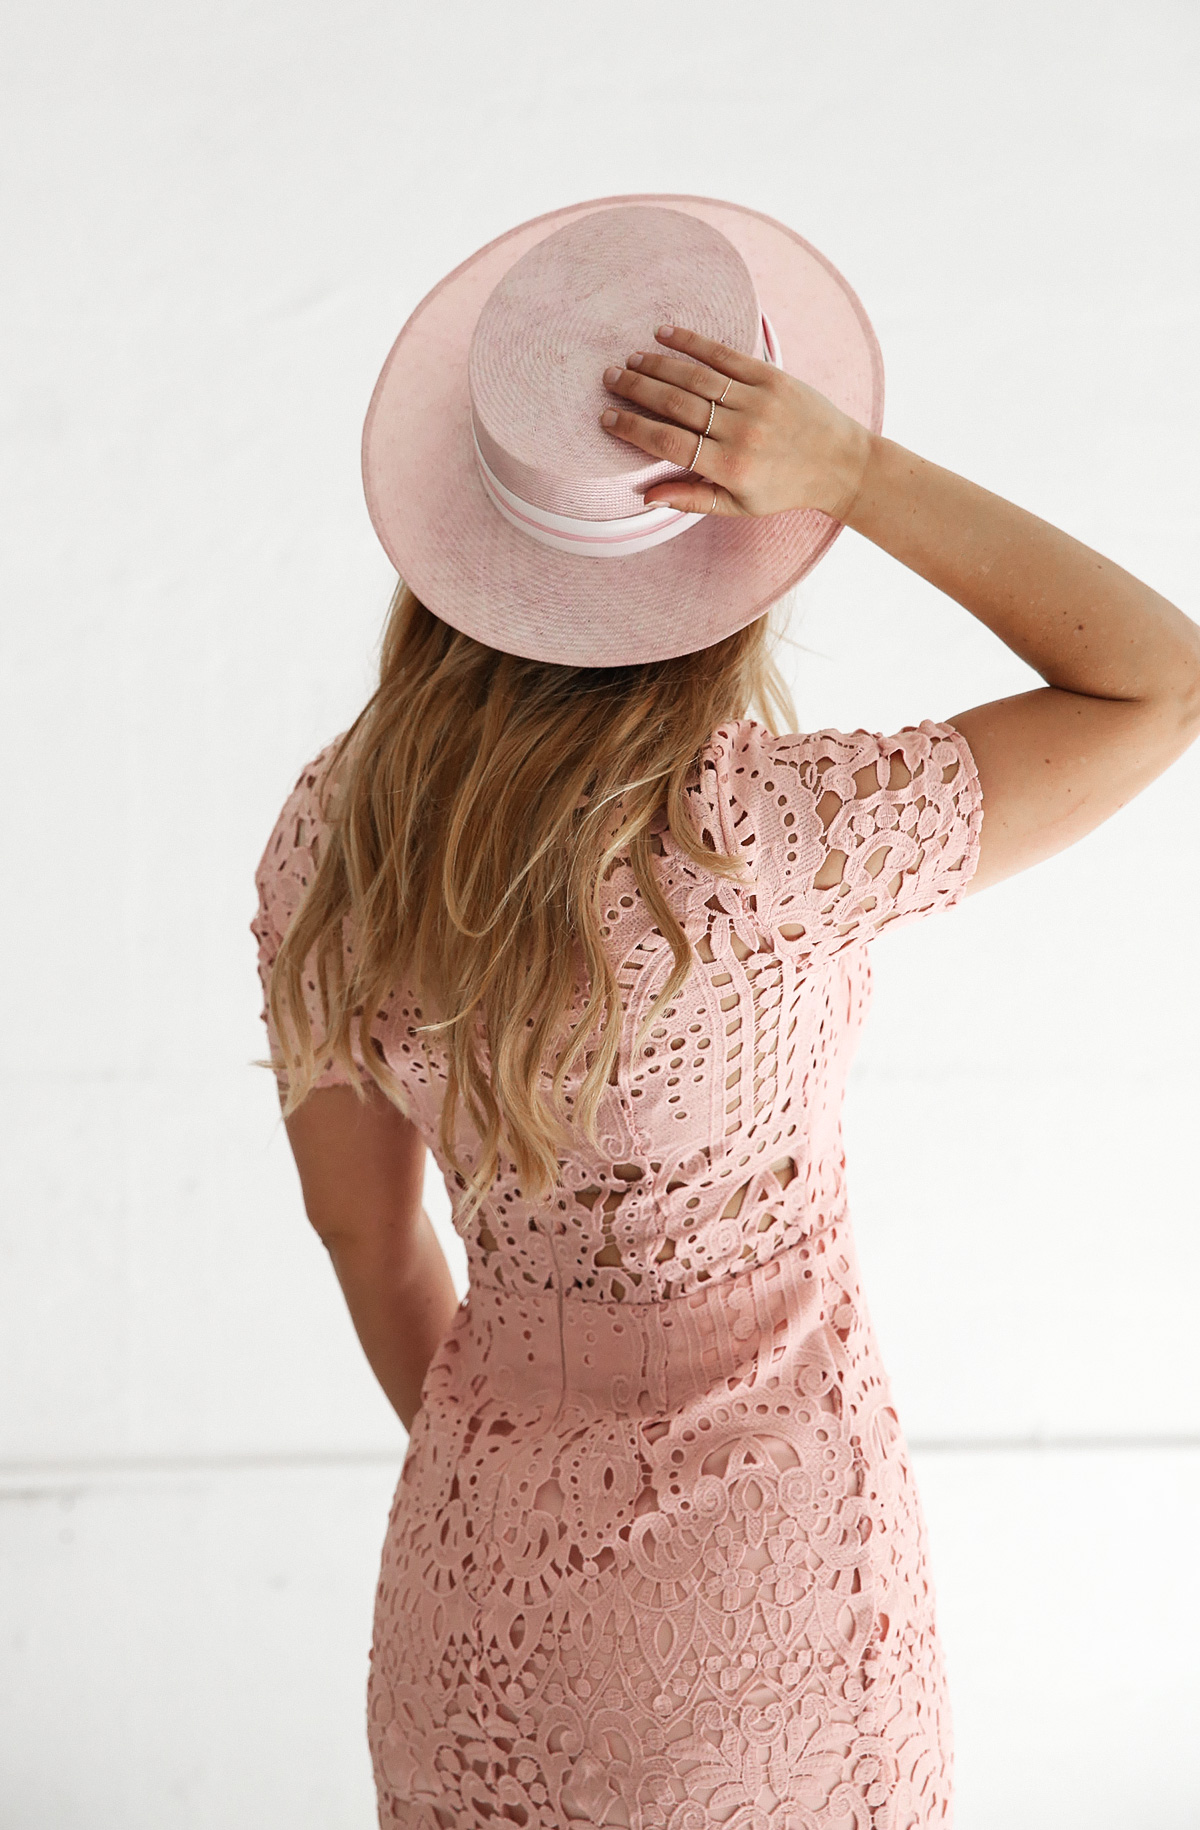 Fashion blogger Lisa Hamilton styling a pastel lace dress  & straw boater hat for Oaks Day at the spring racing carnival